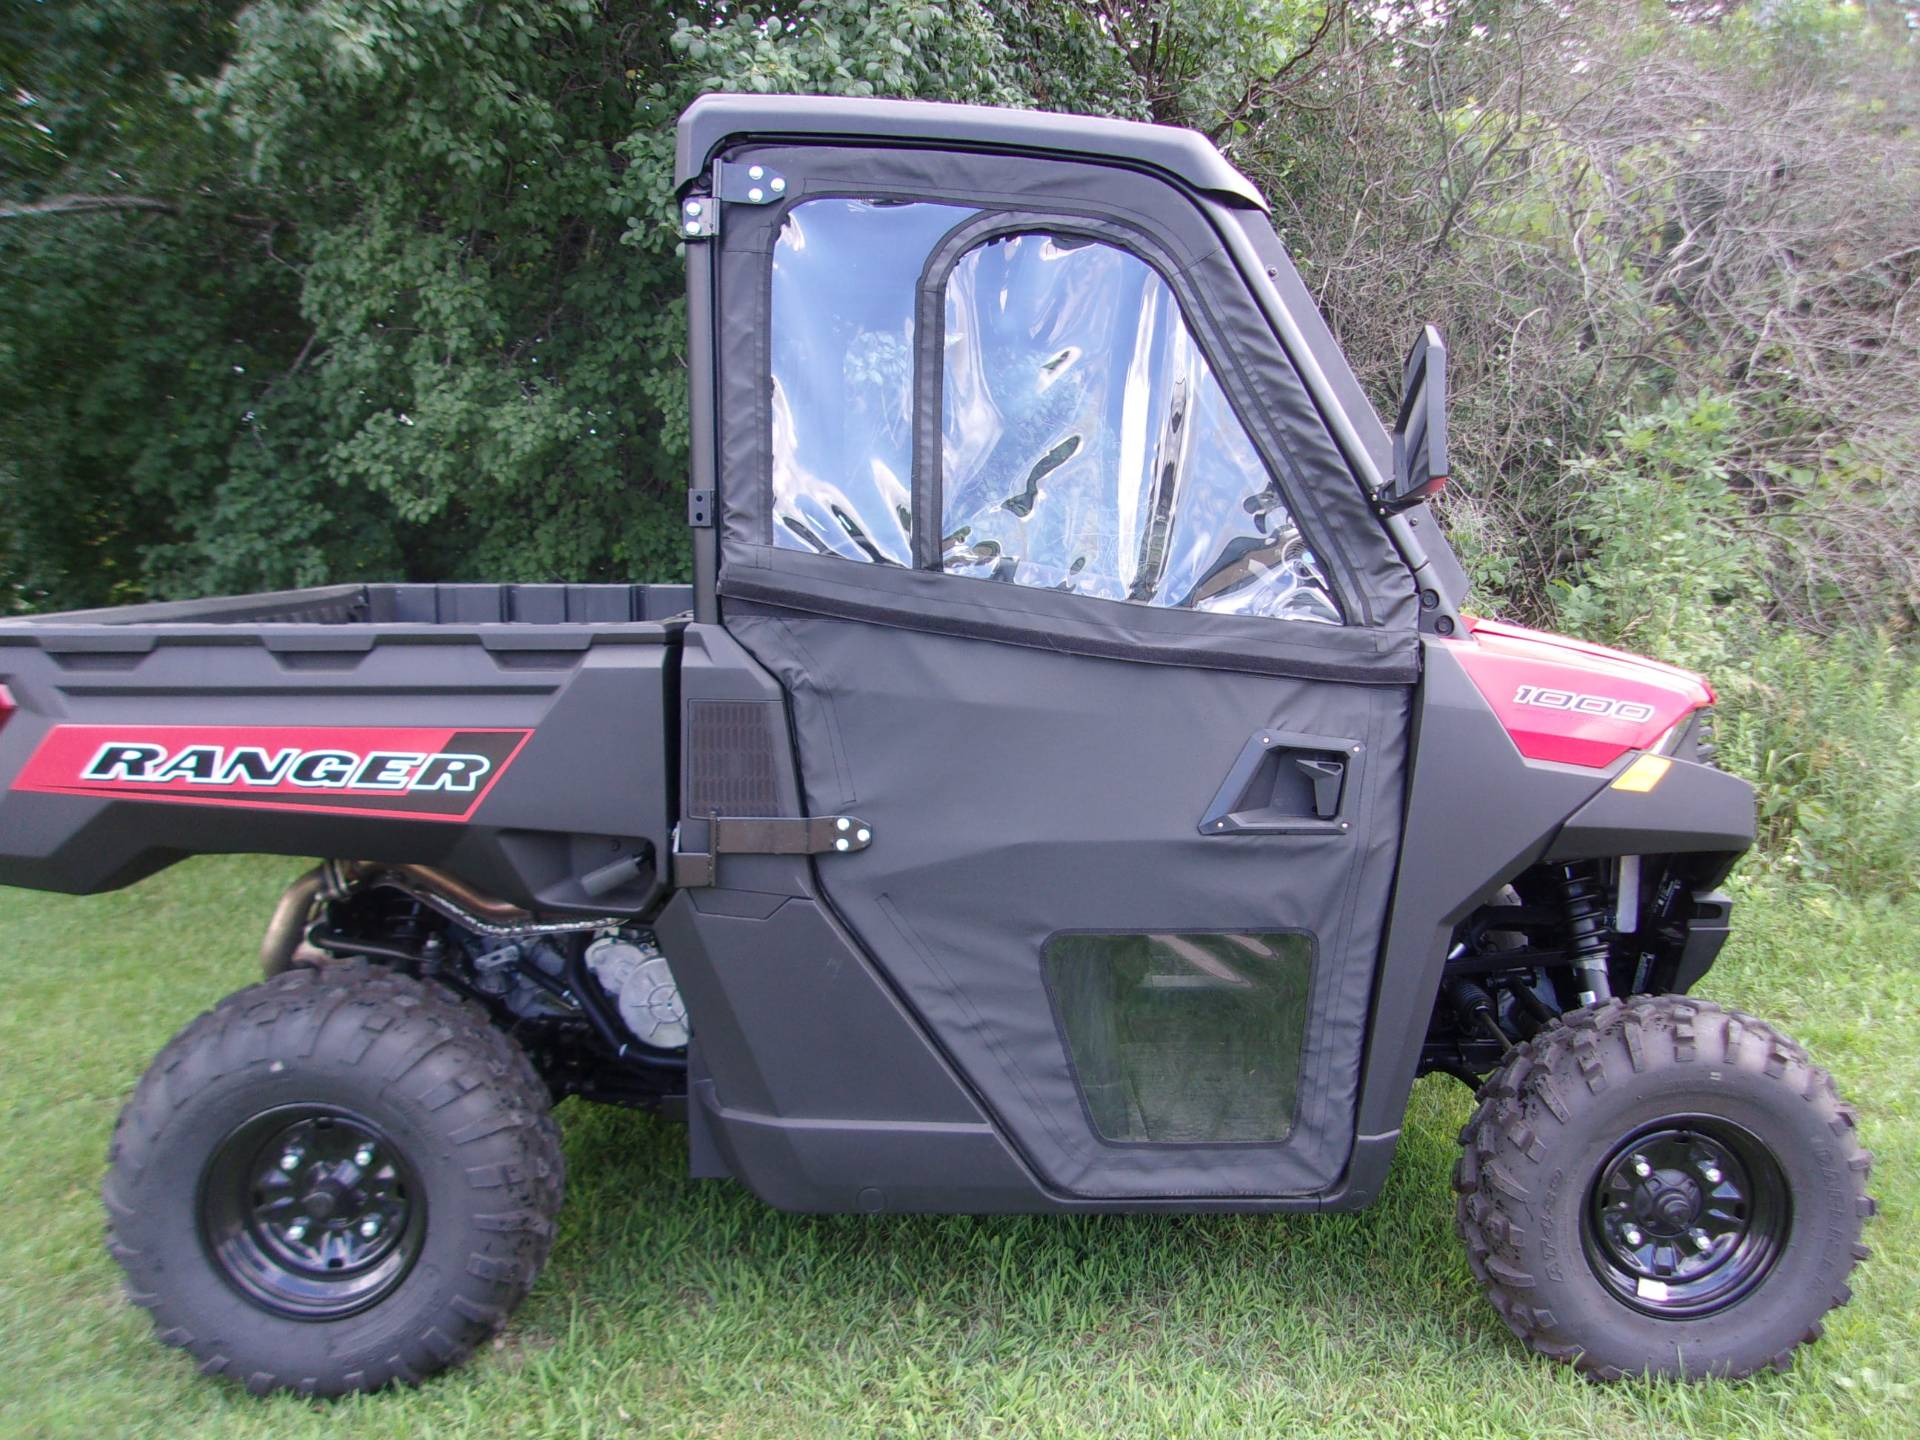 2020 Polaris Ranger 1000 in Mukwonago, Wisconsin - Photo 1